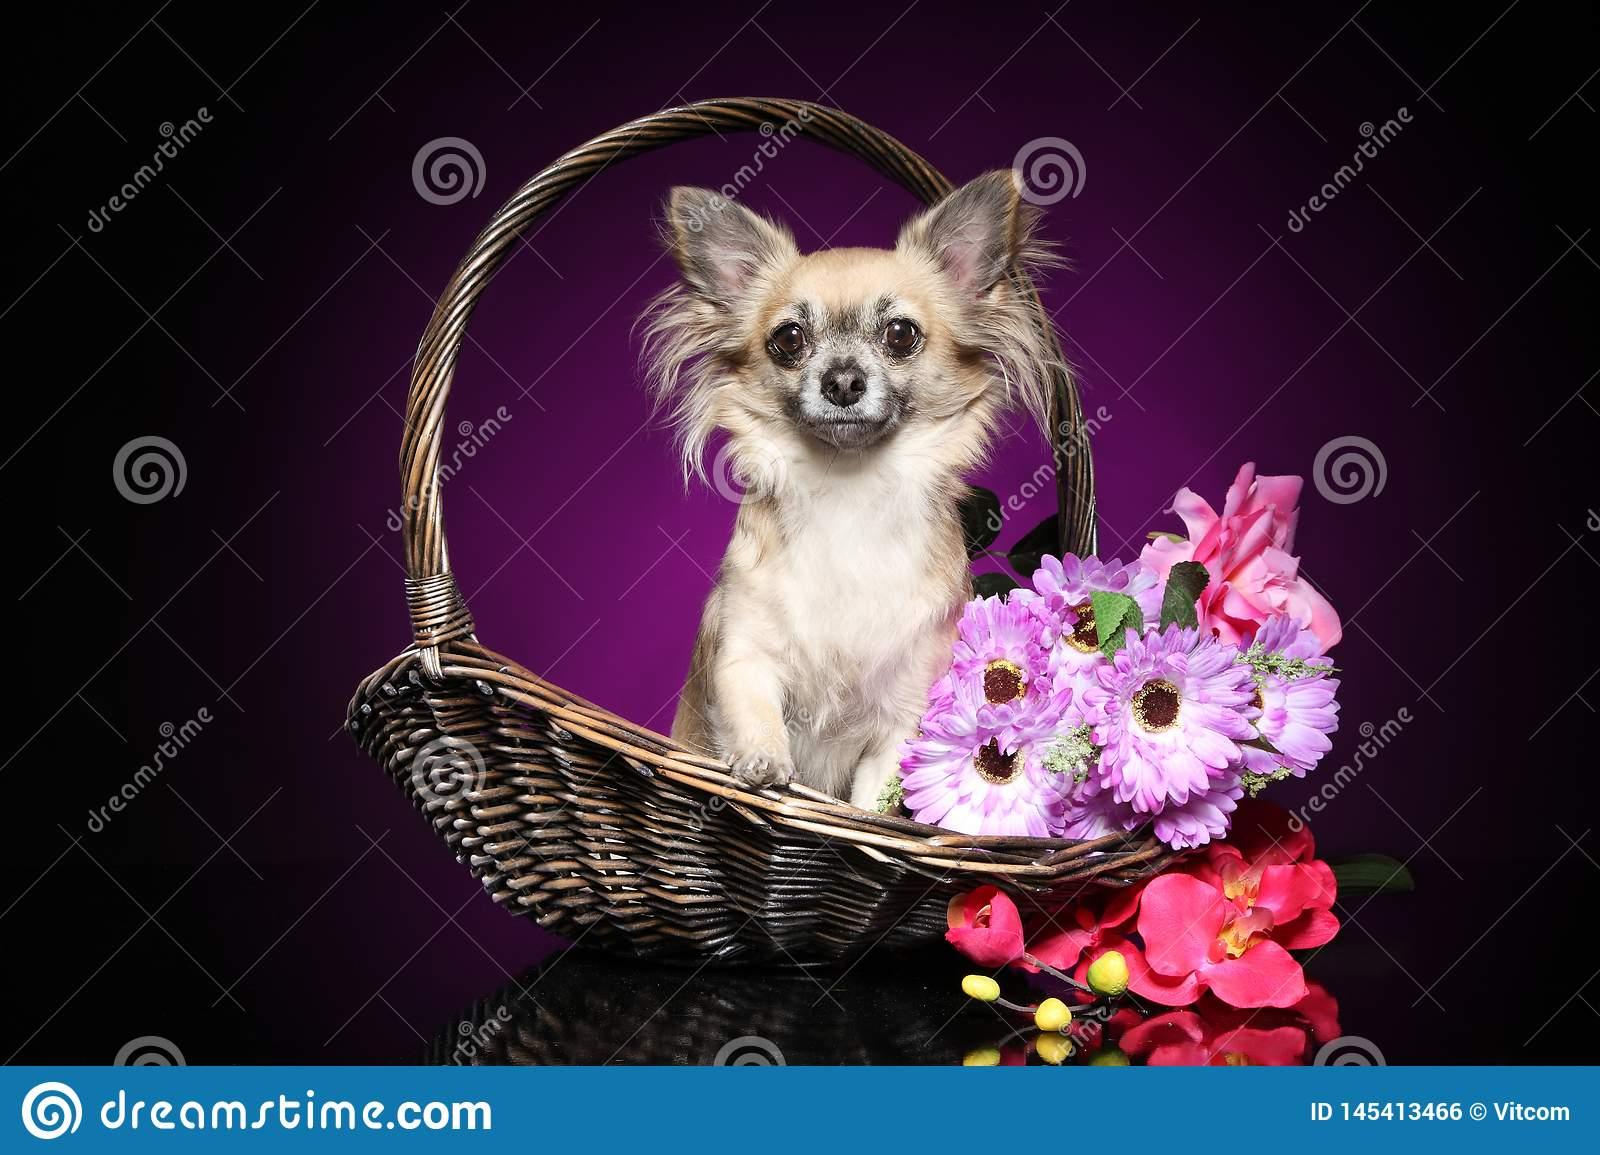 Chihuahua sitting in a wicker basket